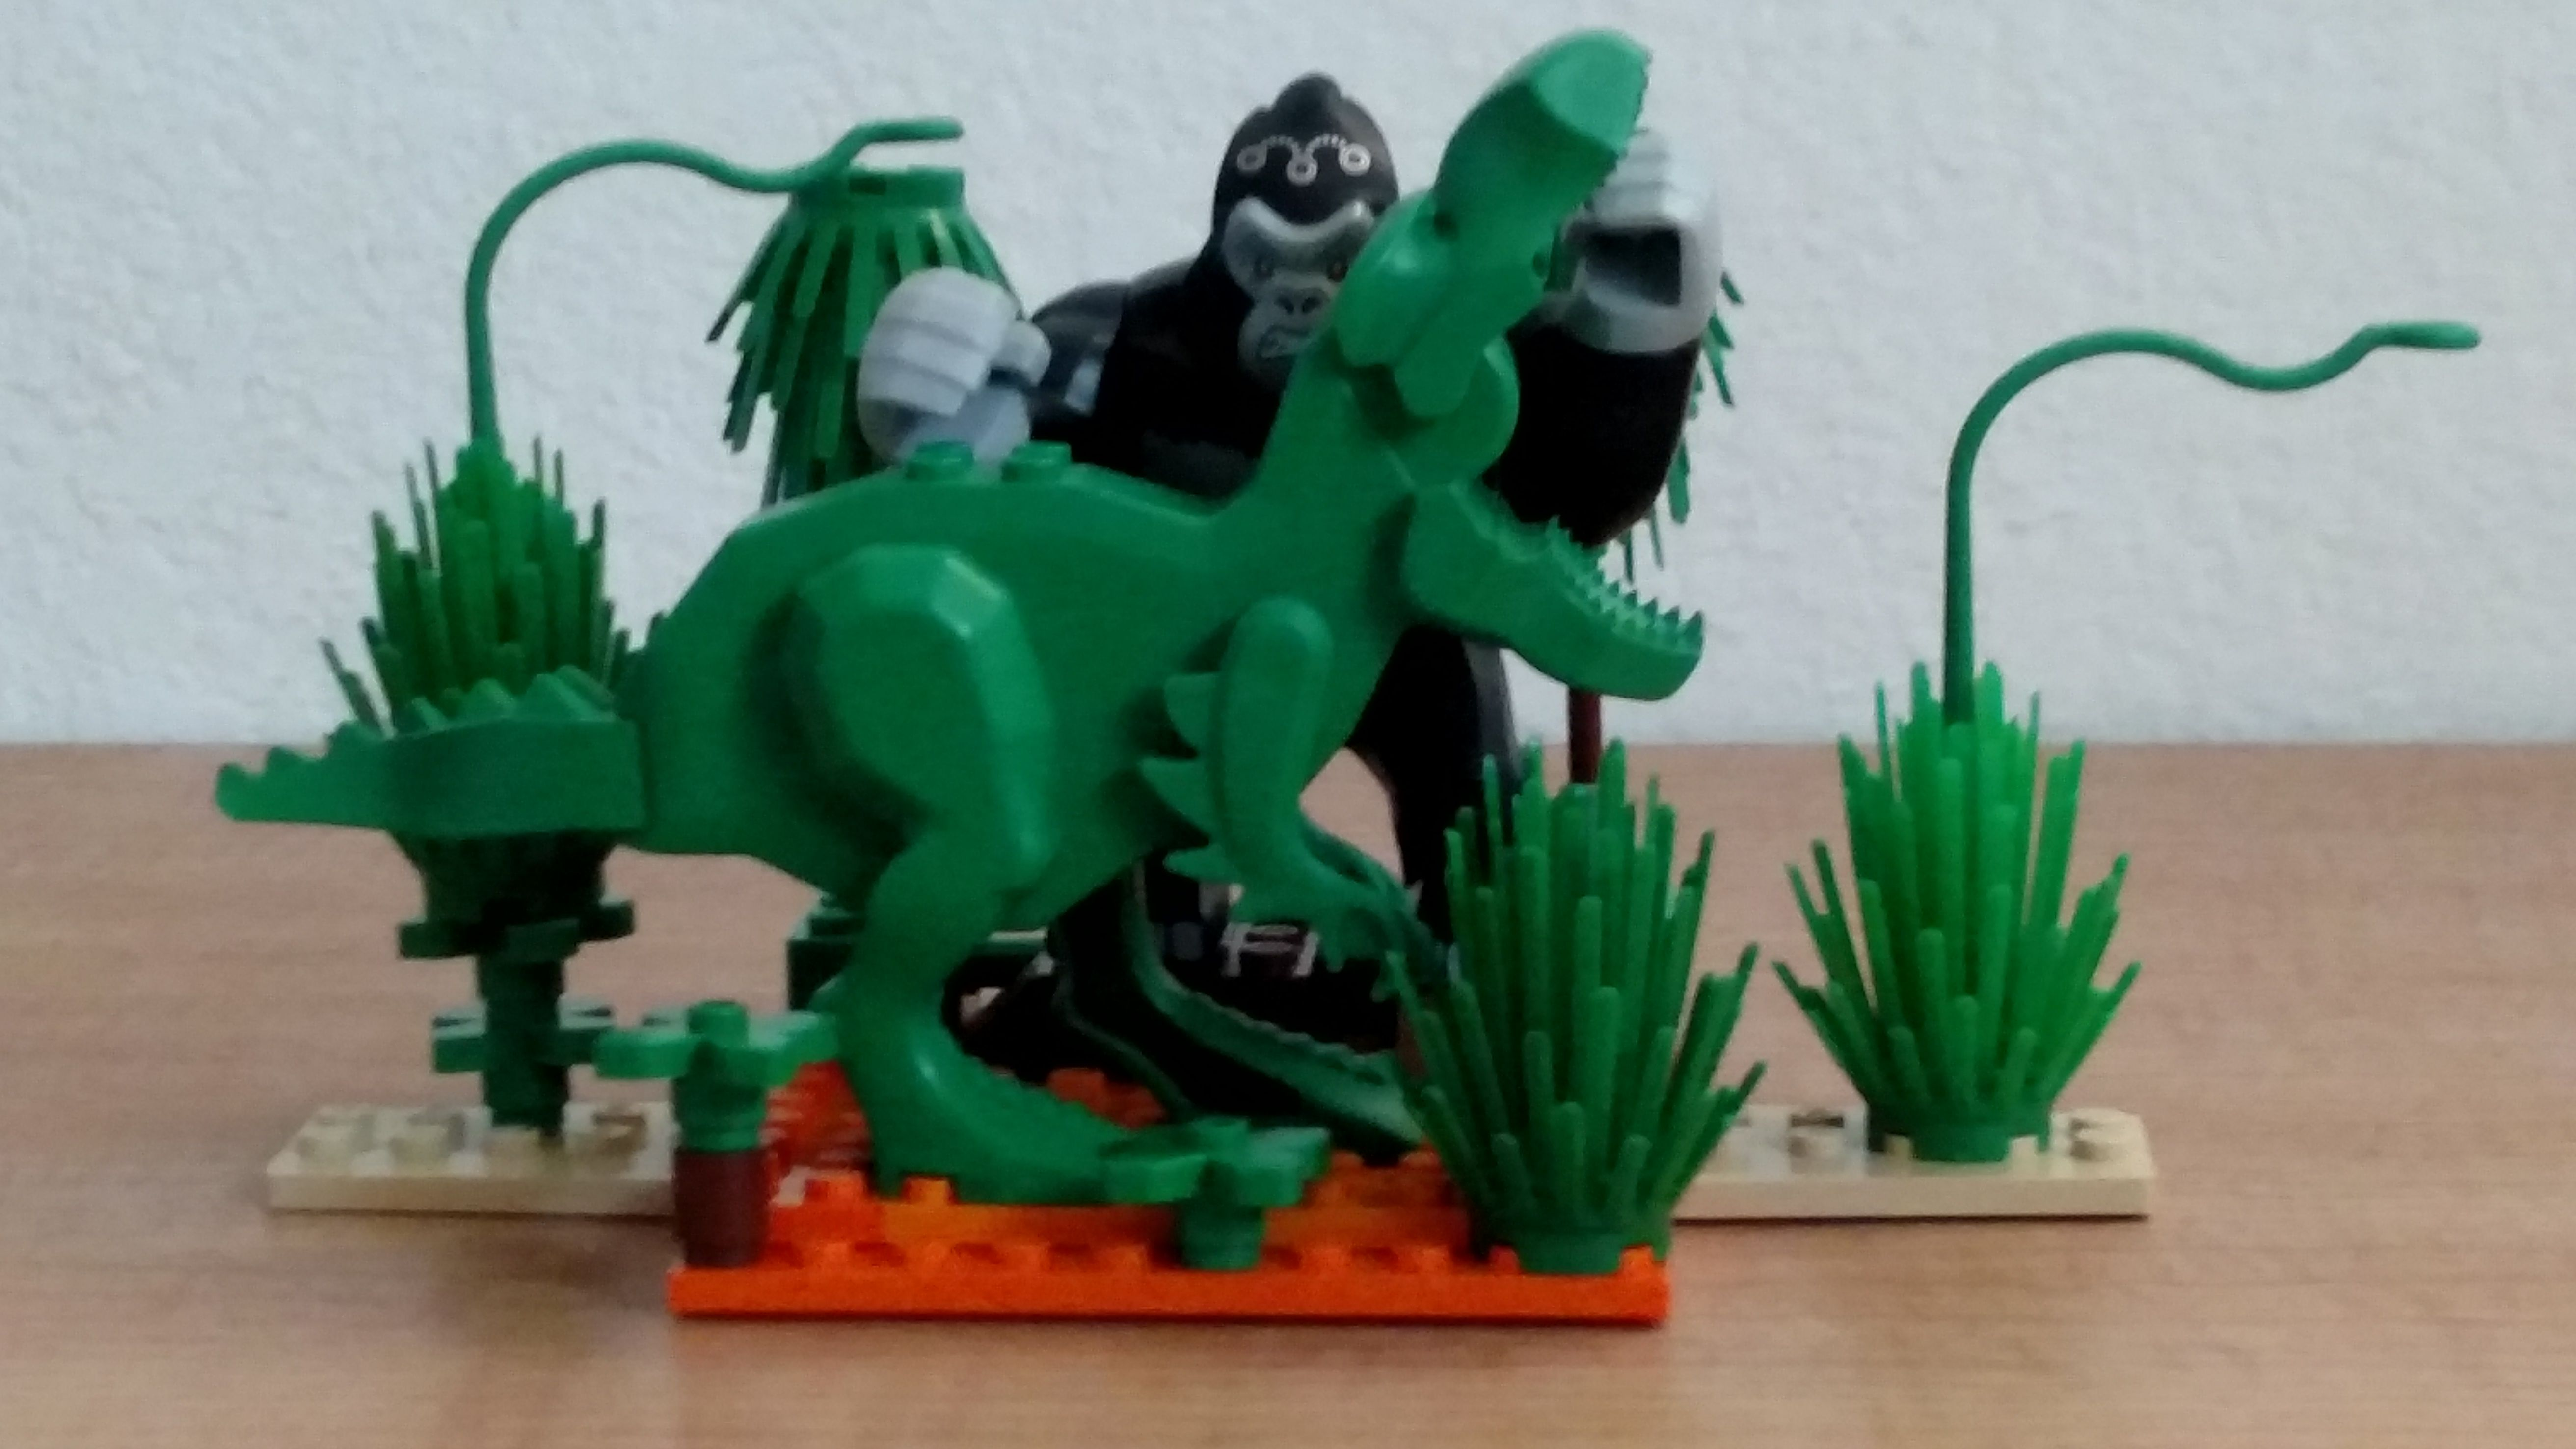 Kong Vs T Rex Gorilla Grod Is Scaled Perfectly To Lego S First Dinosaurs To Recreate The Scene